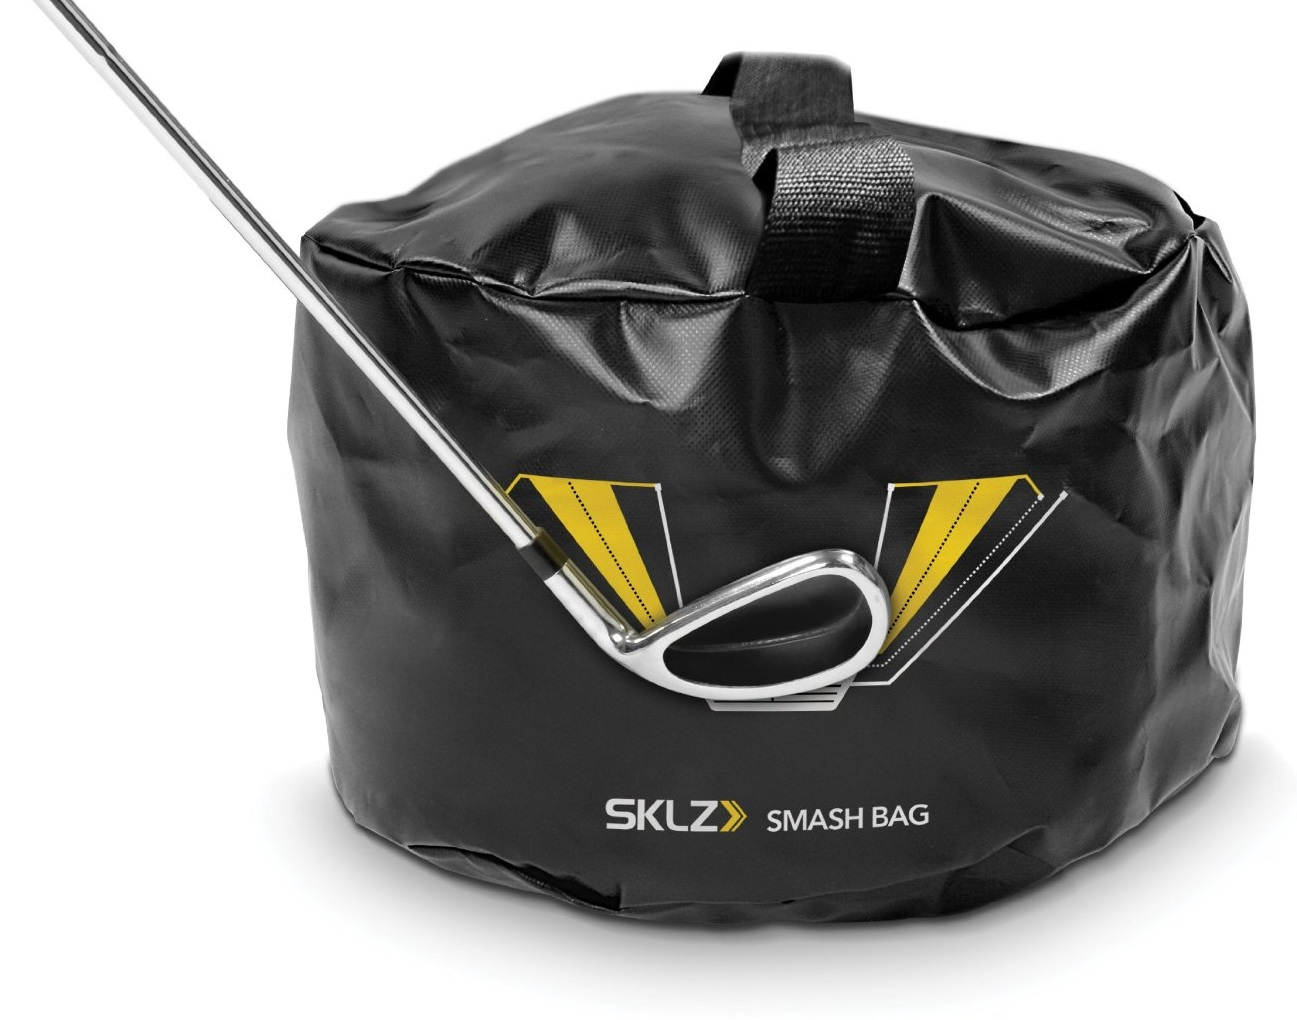 SKLZ Smash Bag Golf Impact Training Product